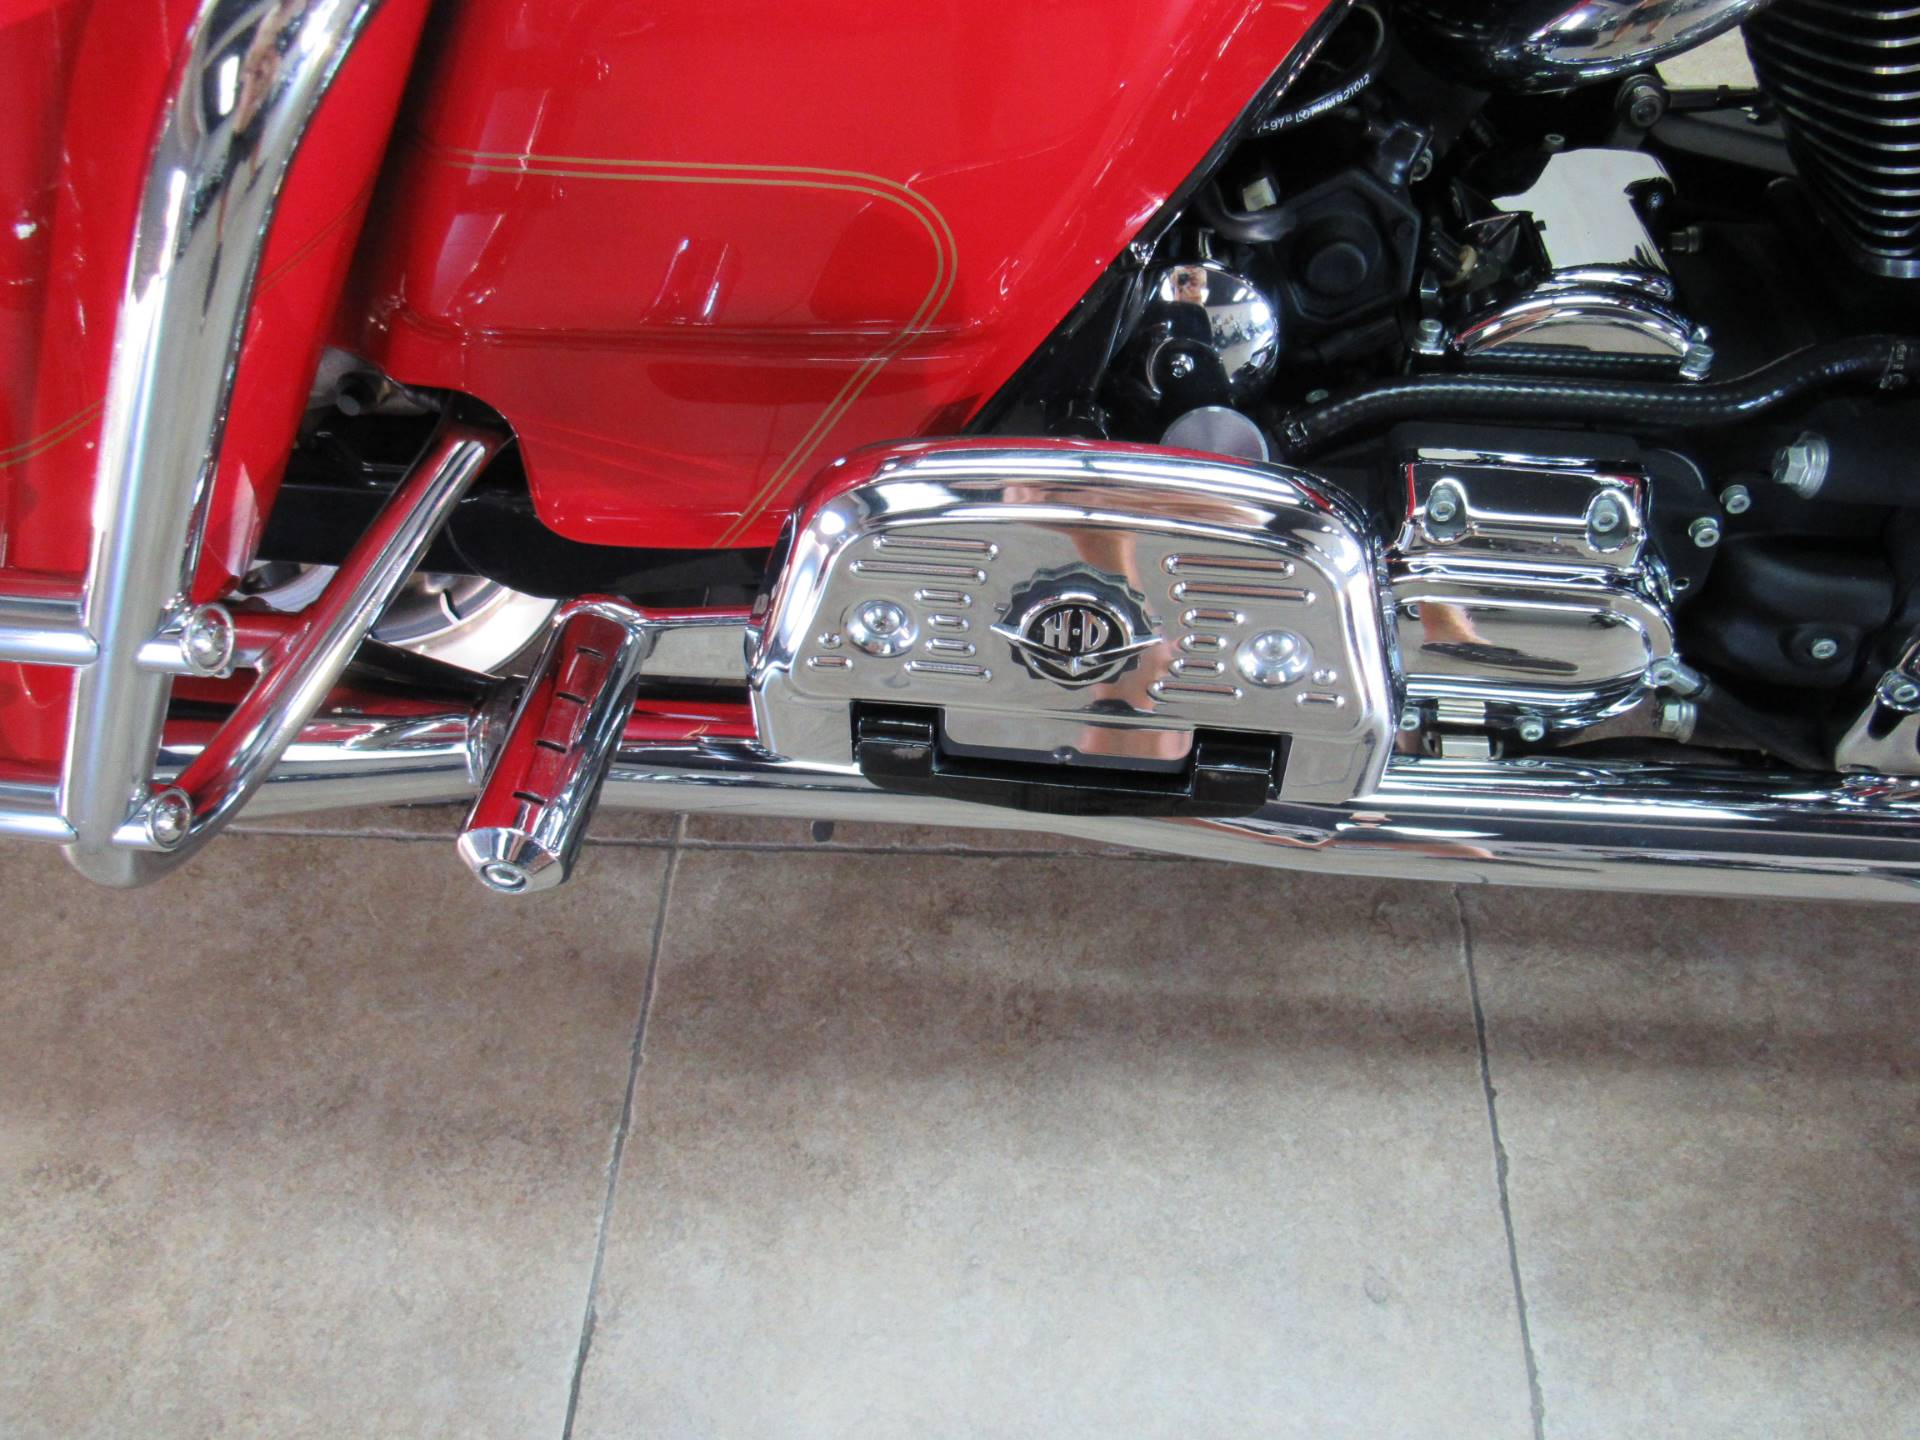 2003 Harley-Davidson Firefighter Special Edition in Temecula, California - Photo 10